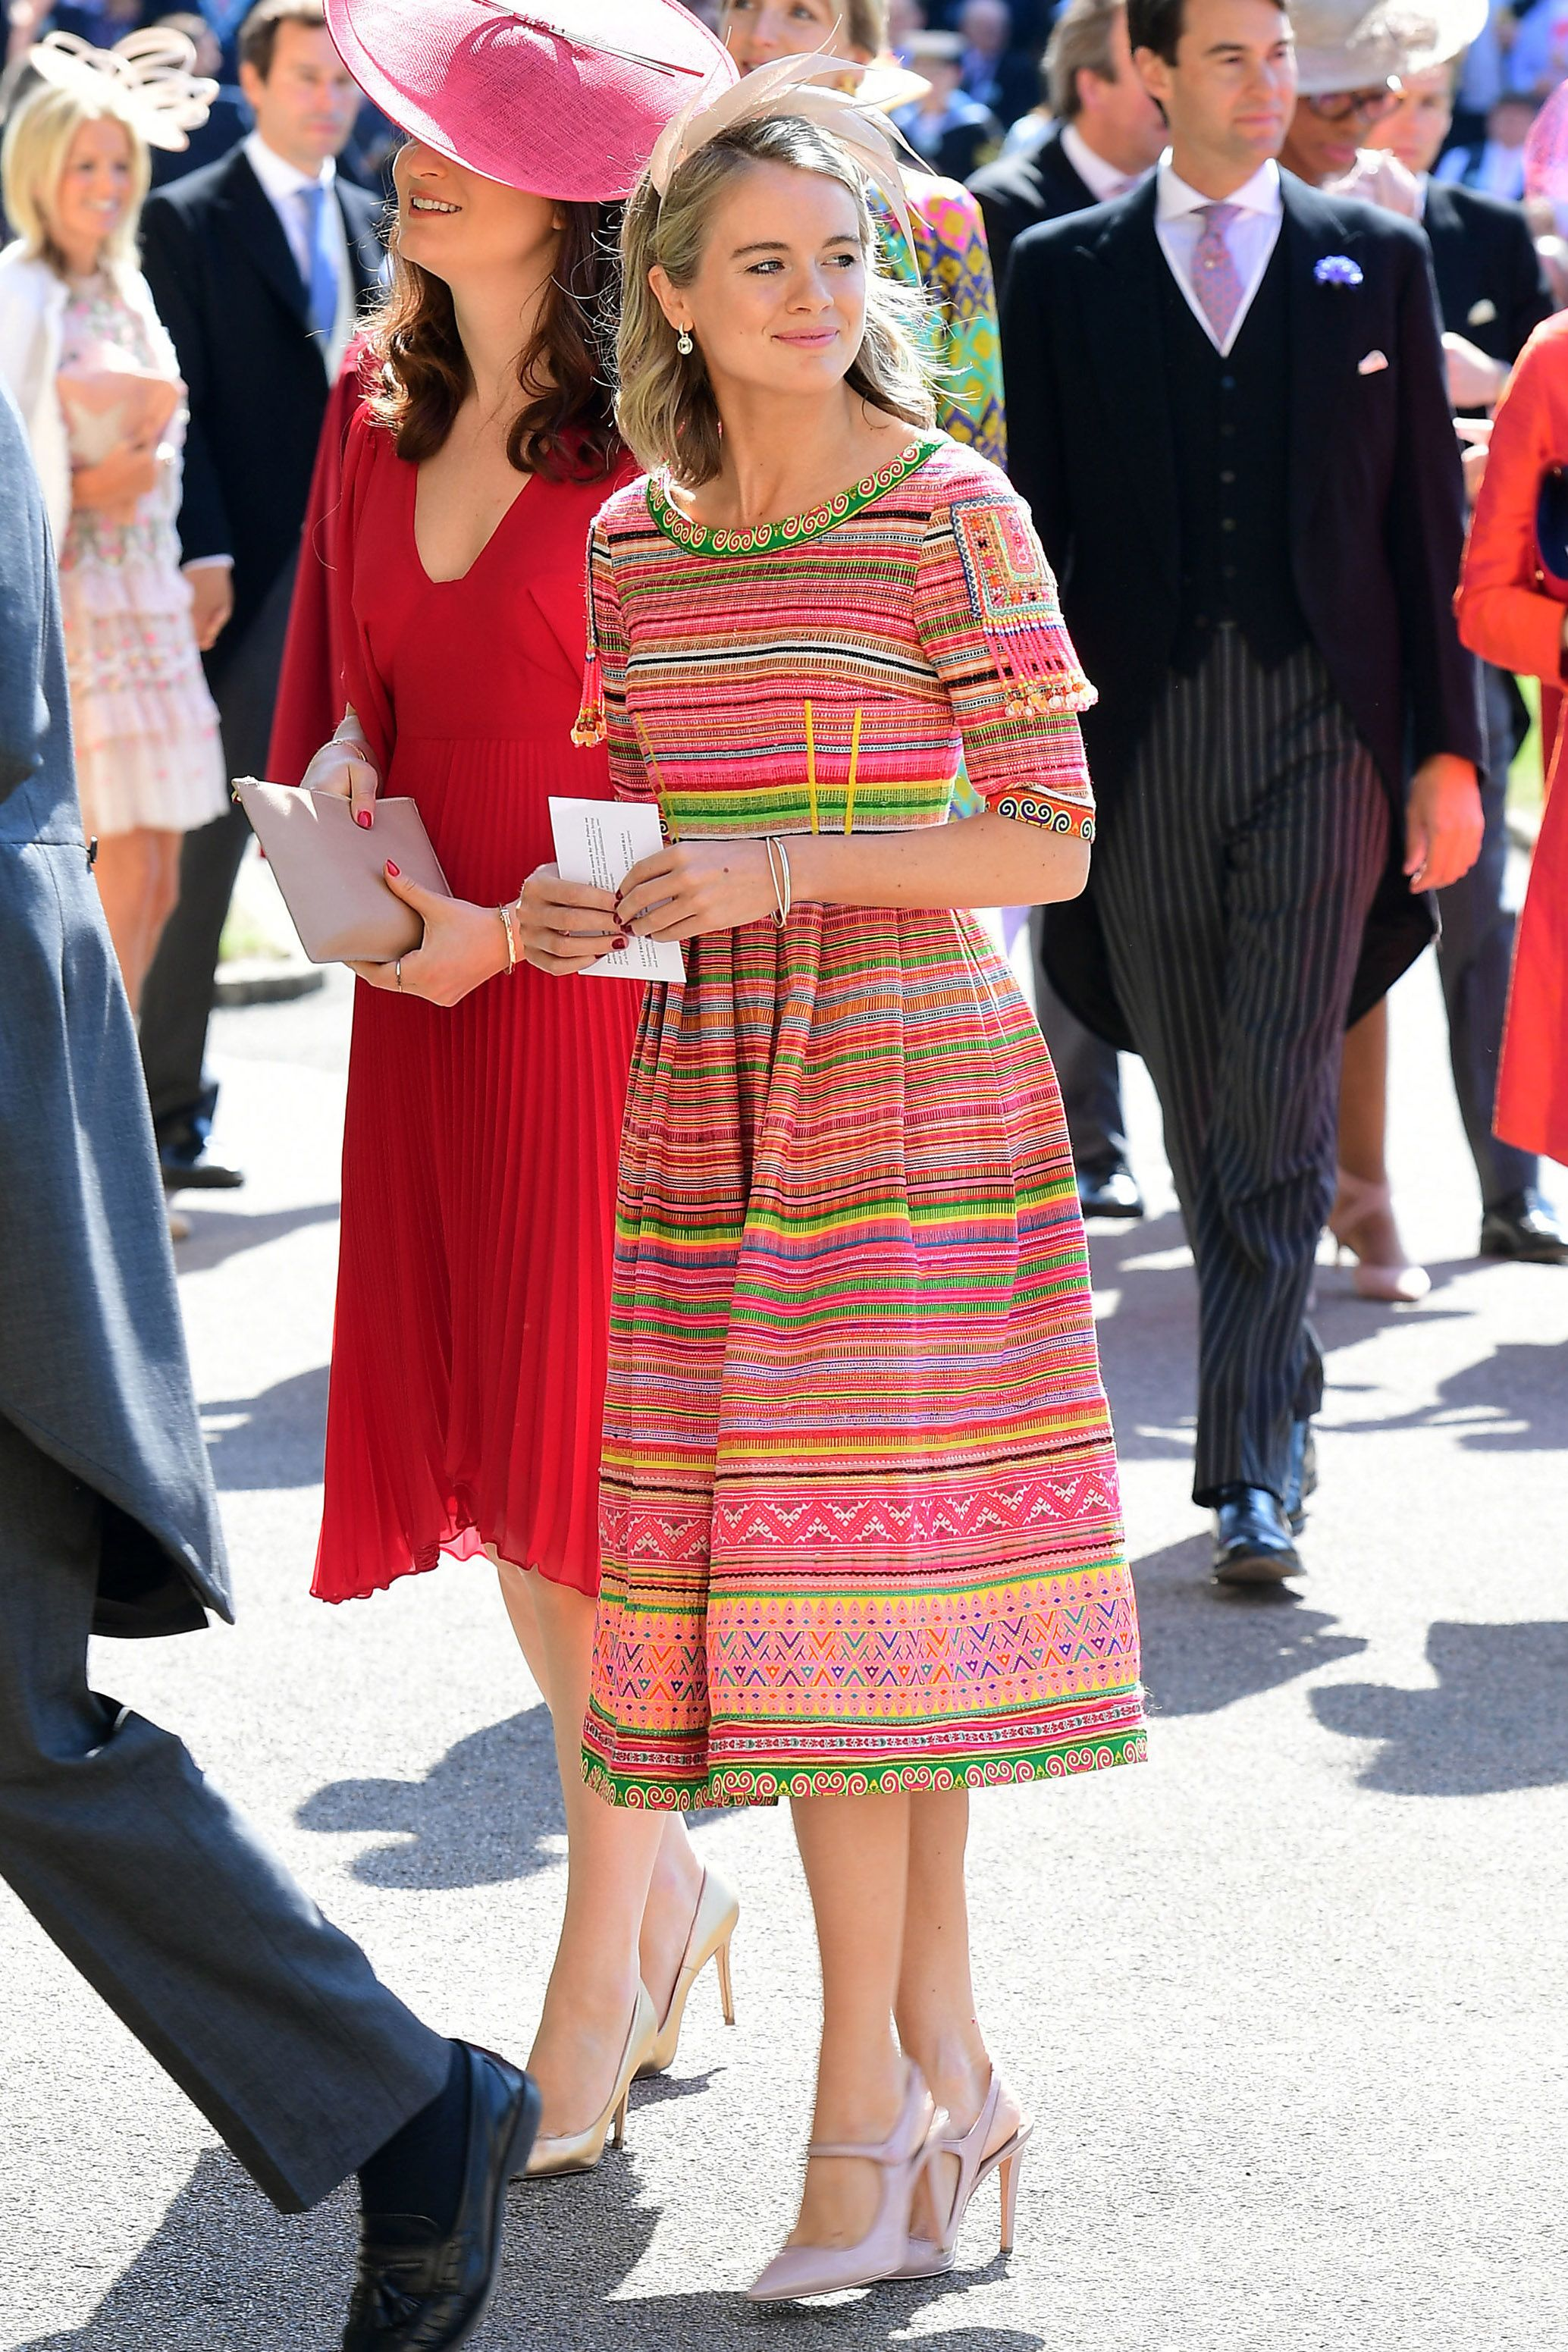 Royal Wedding Best Dressed List - Prince Harry and Meghan Markle Wedding  Guest Style c9e4e4c317f